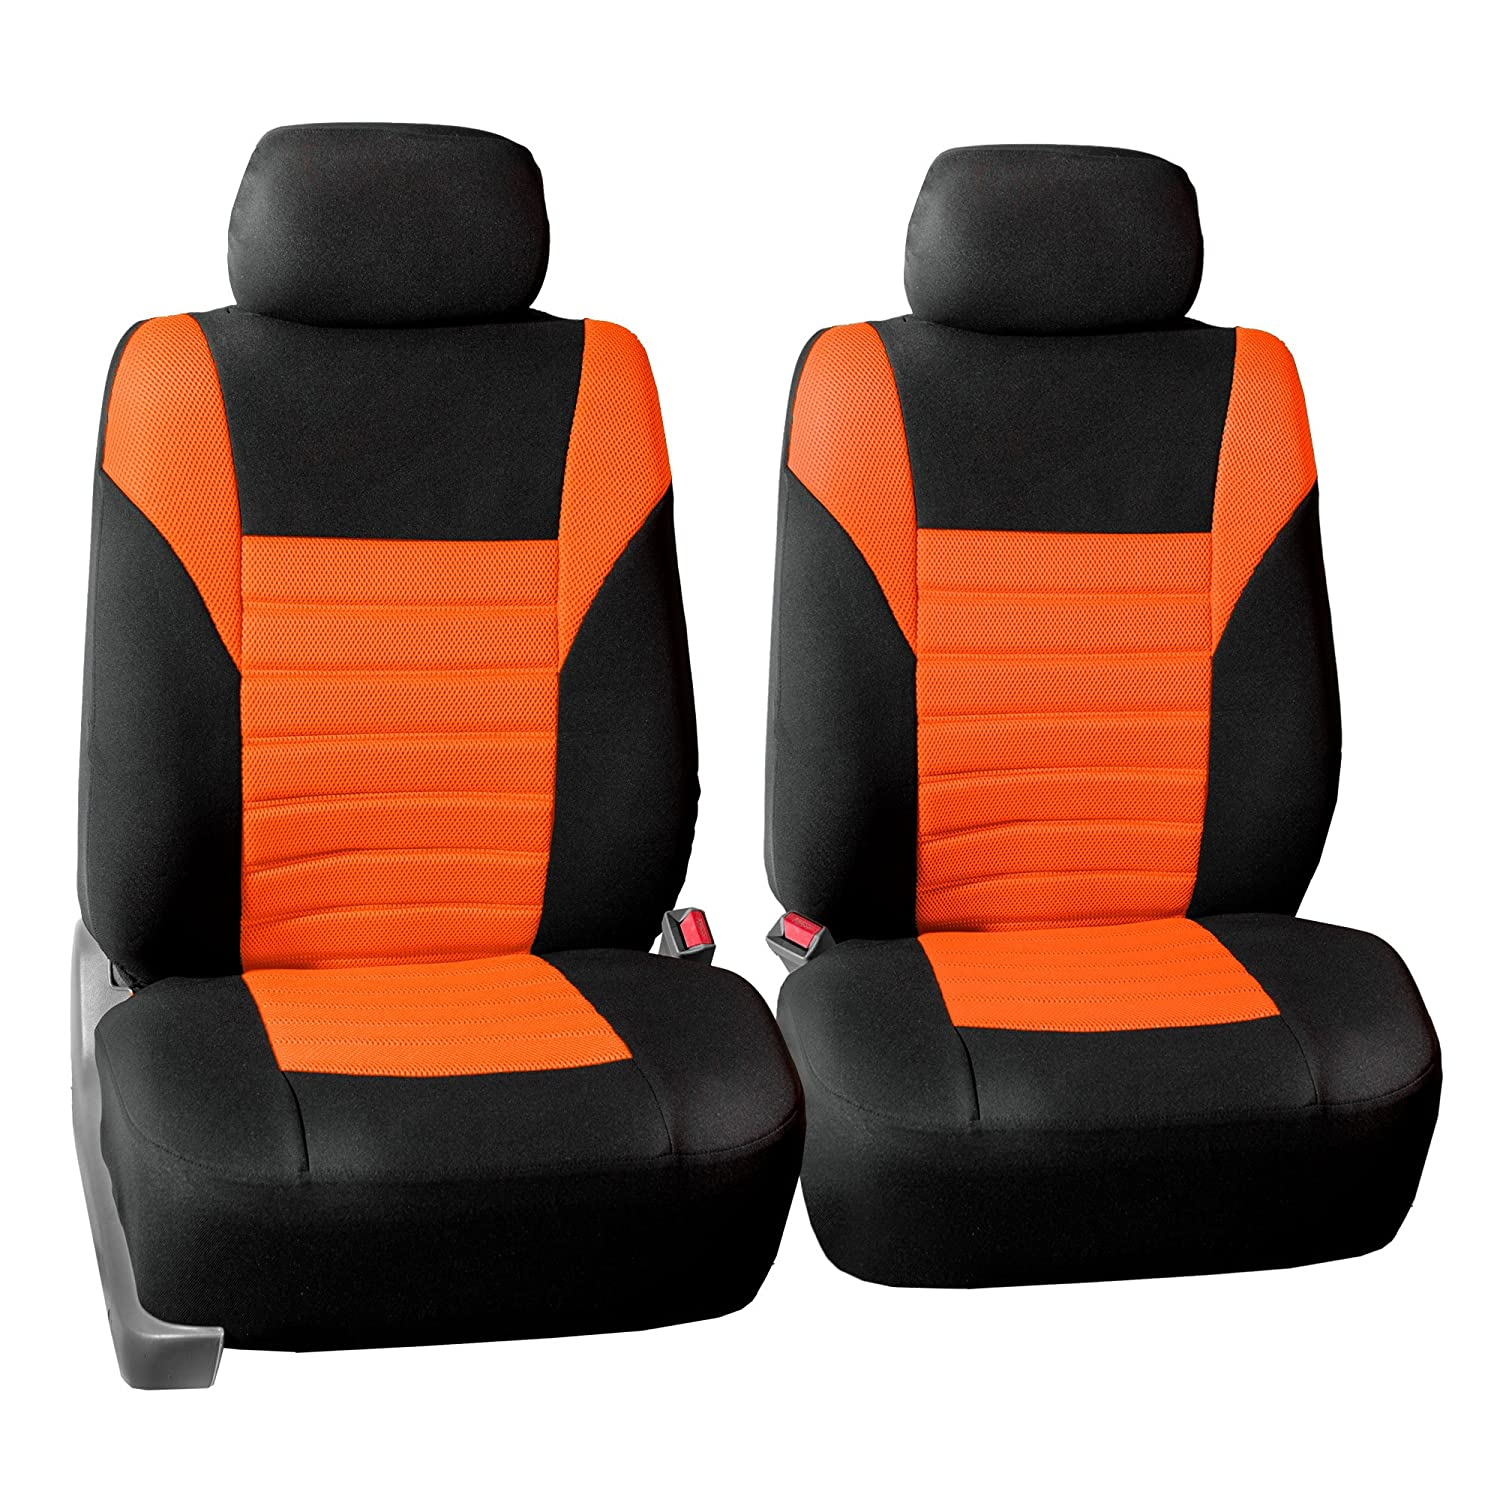 SUV or Van FH Group FH-FB068115 Premium 3D Air Mesh Seat Covers Full Set Airbag /& Split Ready Orange//Color- Fit Most Car Truck